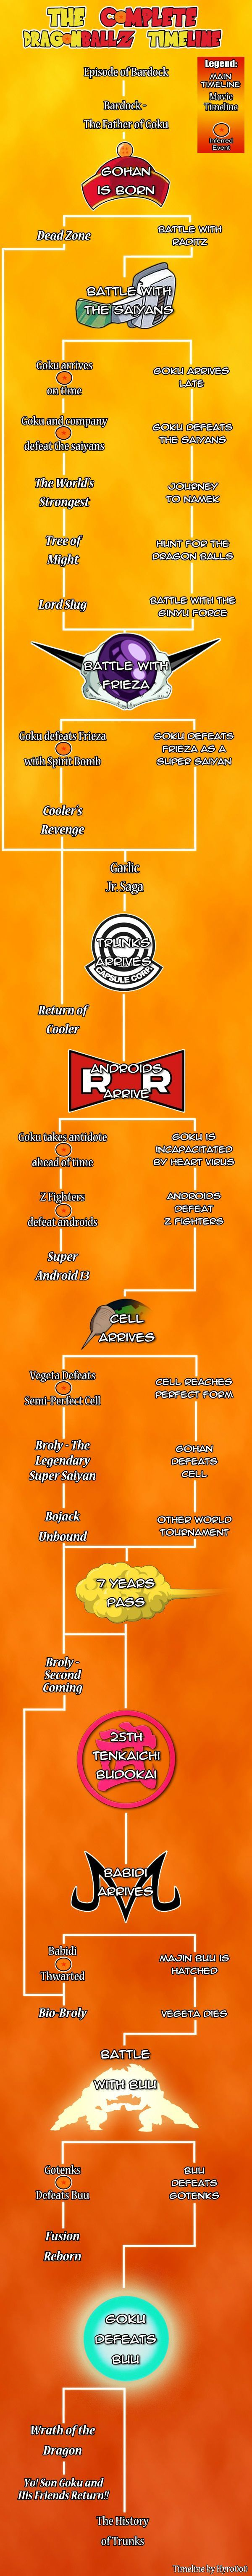 A timeline of Dragon Ball Z and its movies that actually makes sense. #SonGokuKakarot